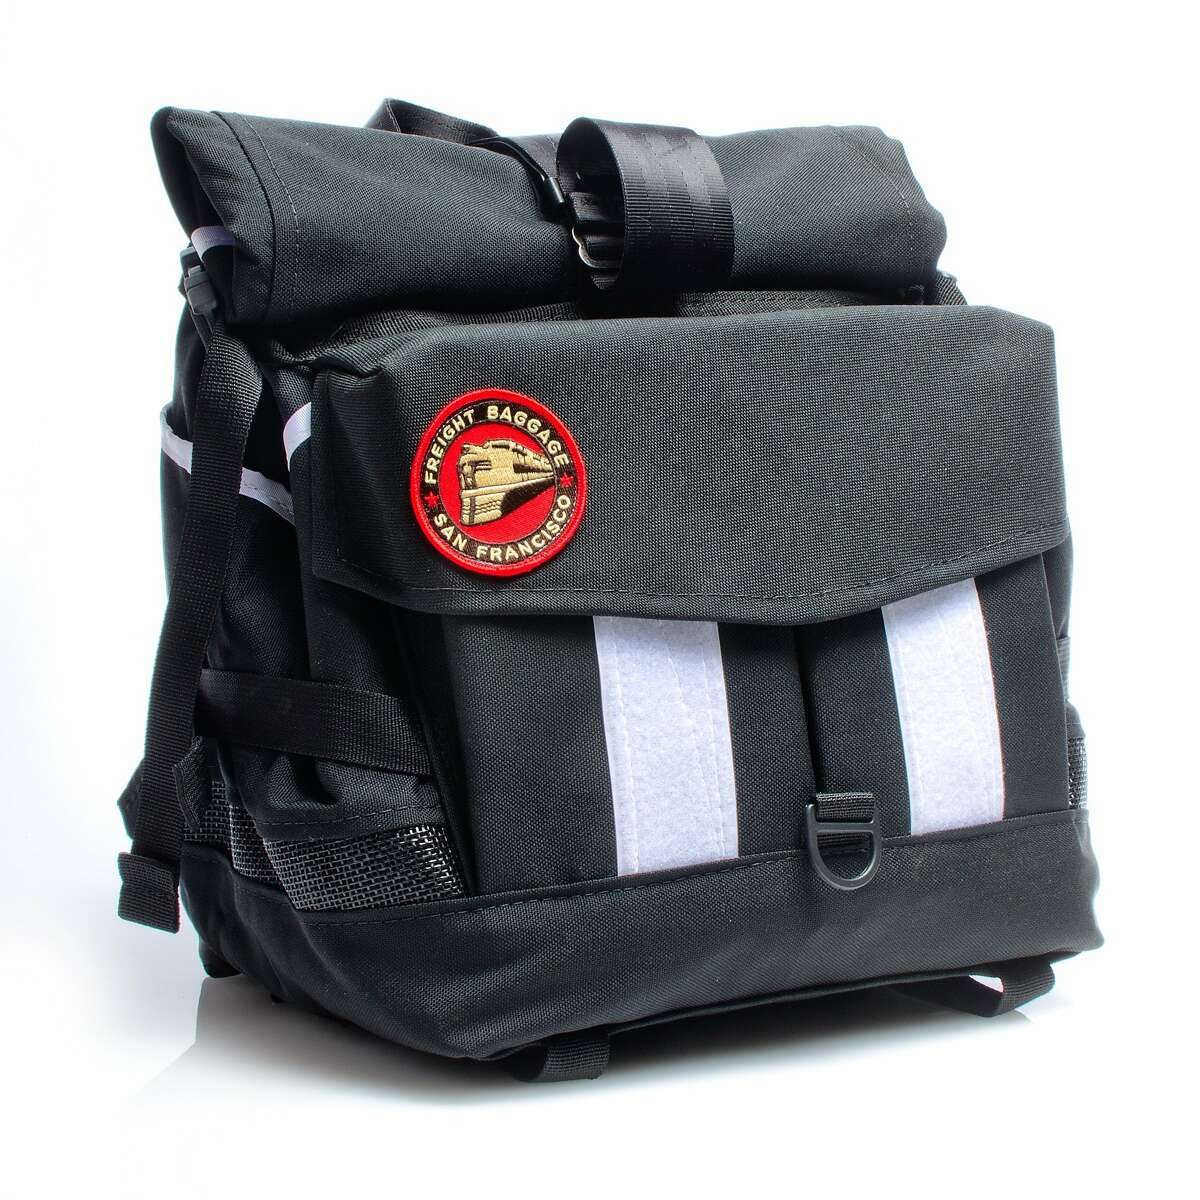 Founded in 2005, Freight offers an ultra-padded Bike Bag ($400) that packs up bicycles for air travel; a soda holster ($25) that attaches to the bike frame for easy access; and everything in between, including Rolltop bags, reminiscent of Eagle Scout backpacks. Freight's products are made with indestructible 1000D Cordura fabric, waterproof vinyl lining and a host of other reinforcing materials that are all domestically manufactured. They're sold at Freewheel, 914 Valencia St., S.F. (415) 643-9213. www.thefreewheel.com, and online at www.freightbags.com. Pictured is a Rack bag.